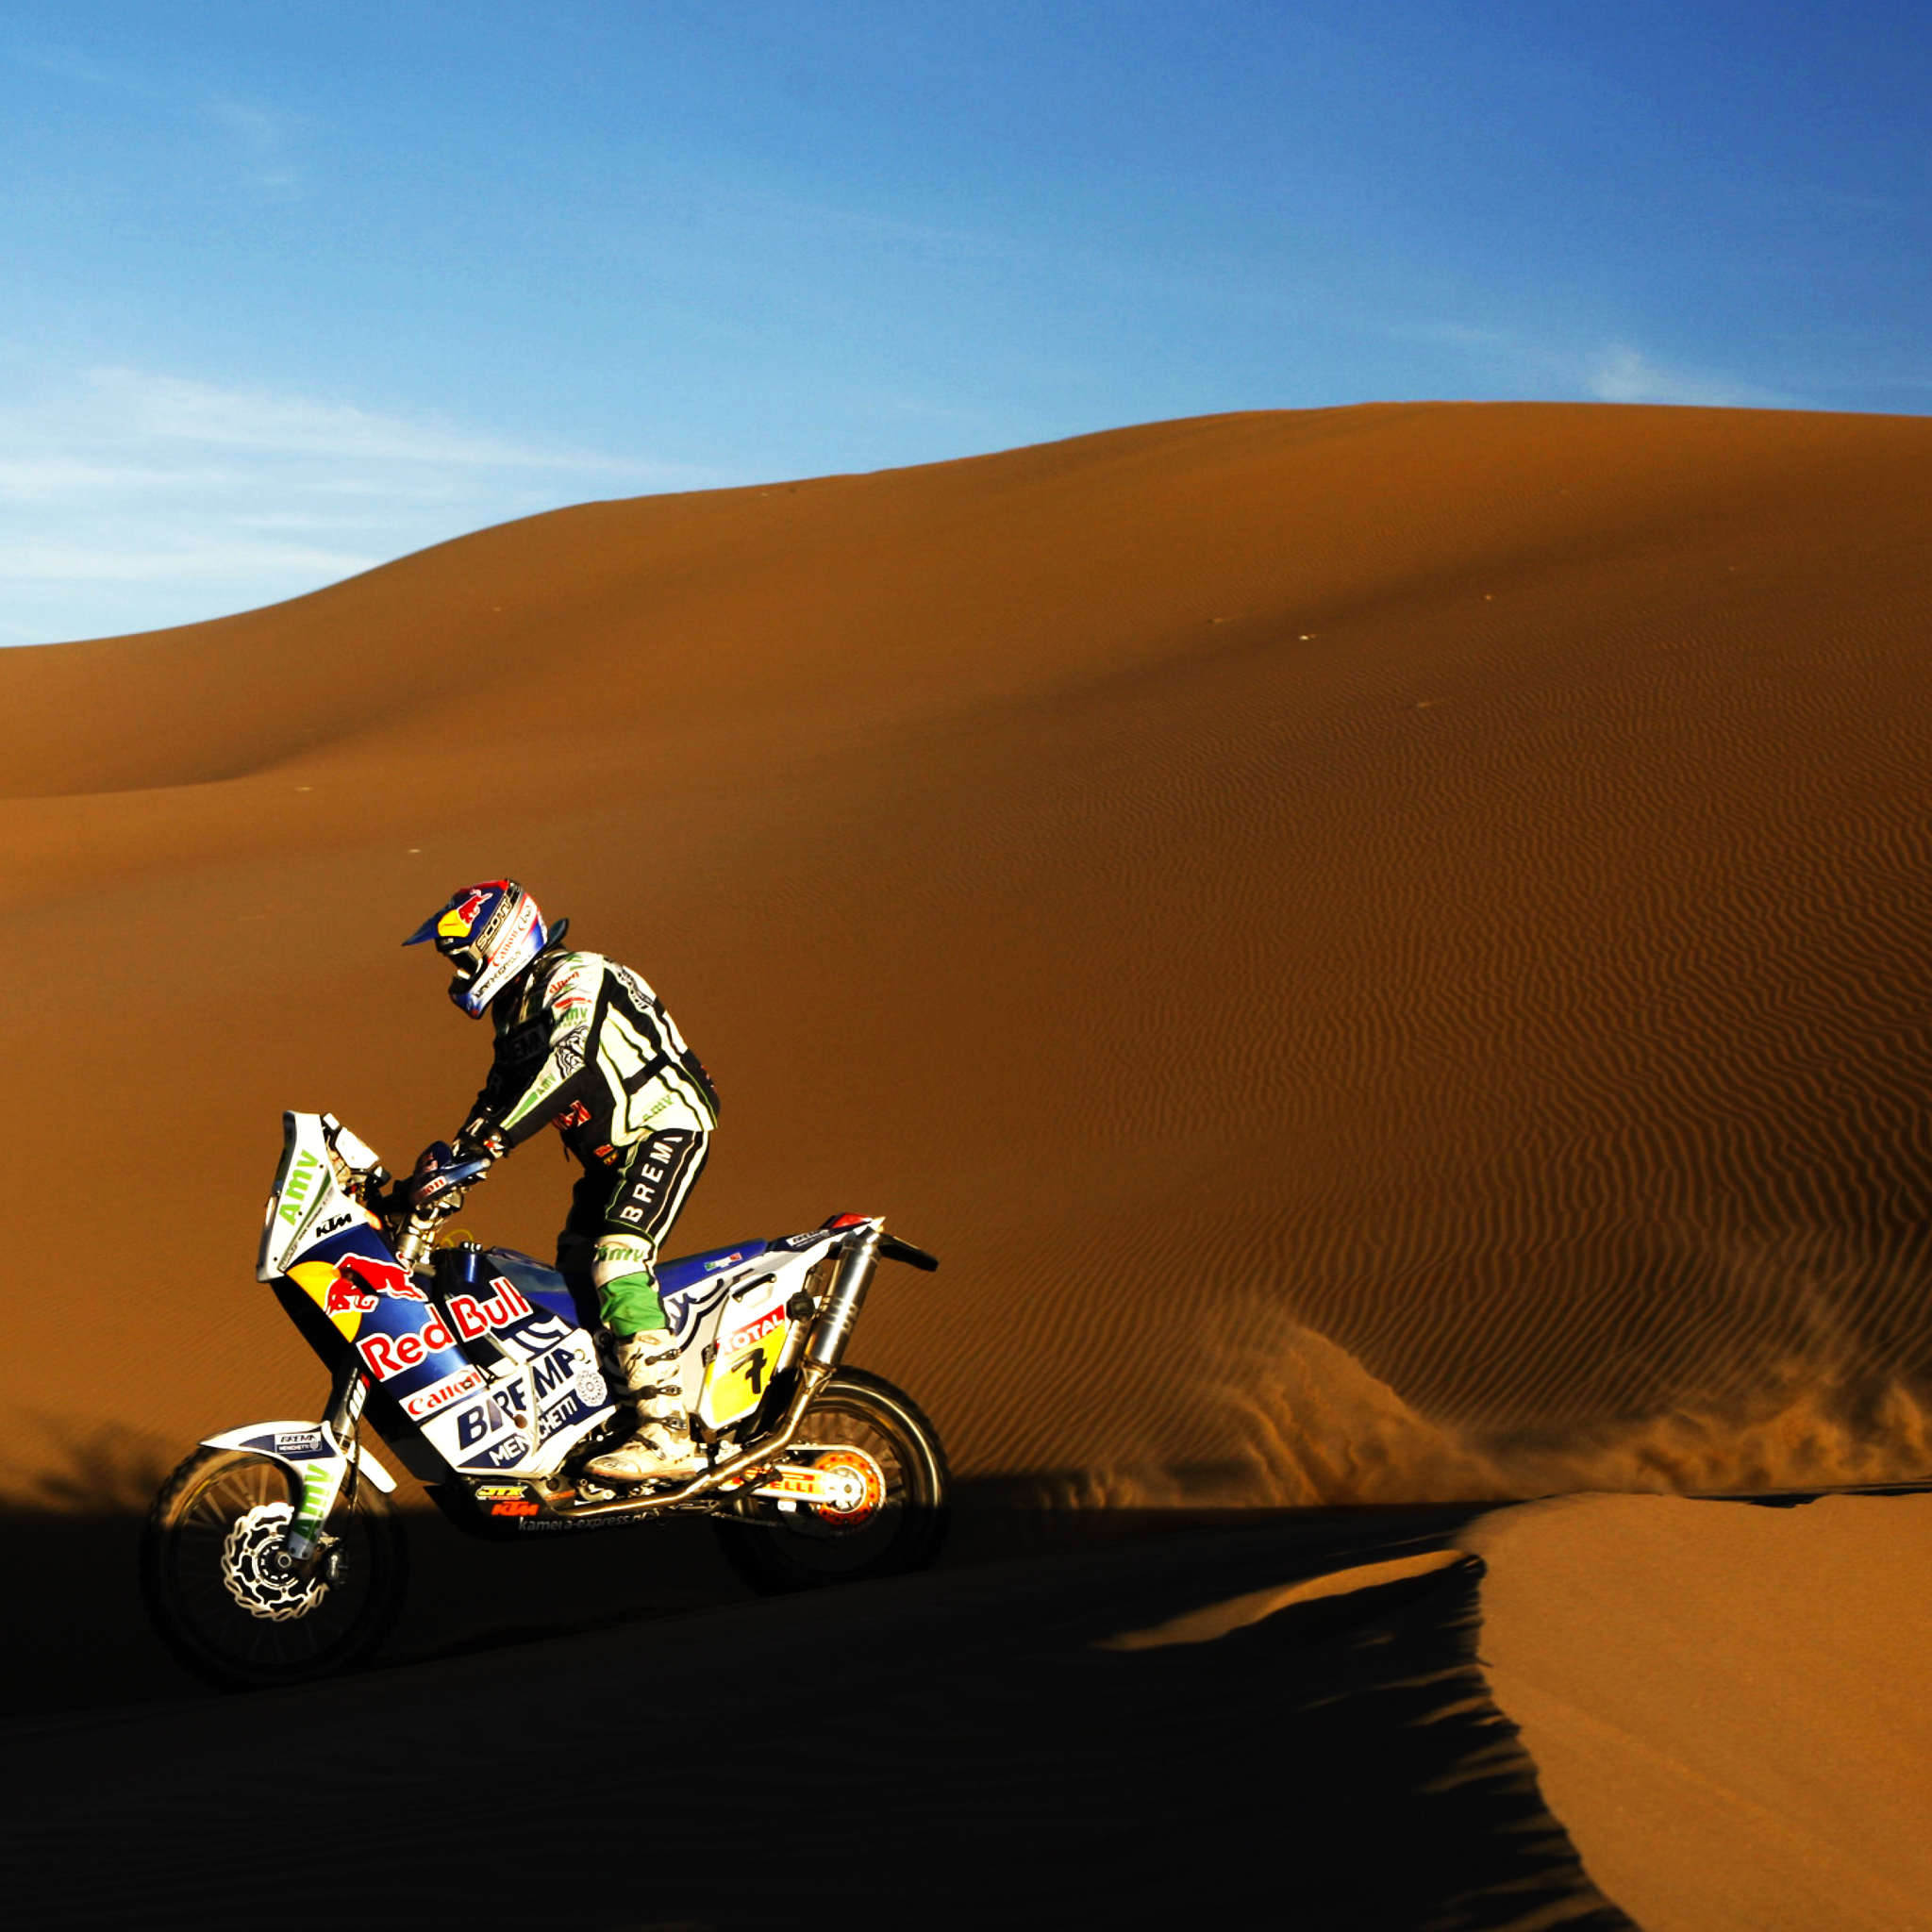 Dakar Cross 3Wallpapers iPad Retina Dakar Cross   iPad Retina